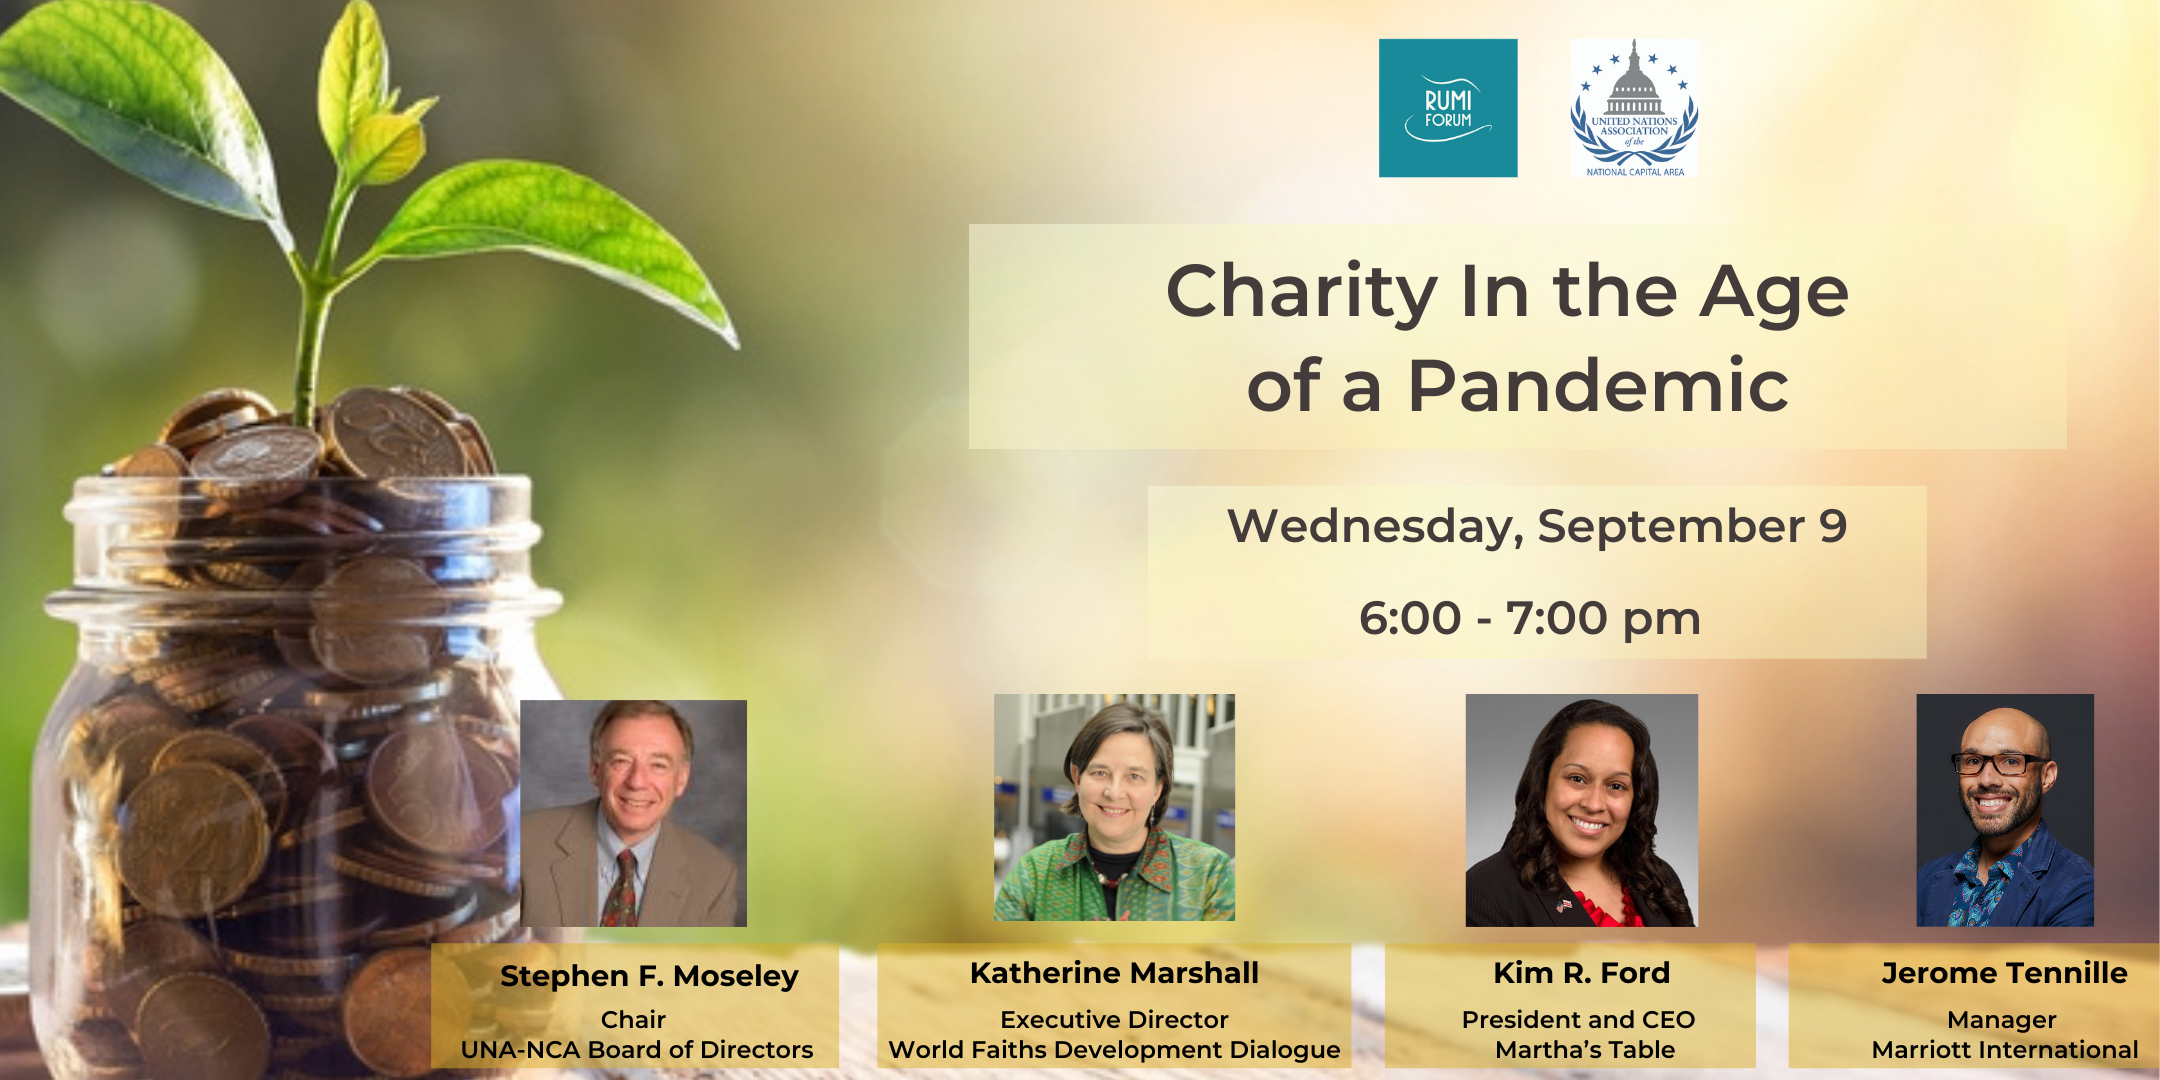 Charity In the Age of a Pandemic